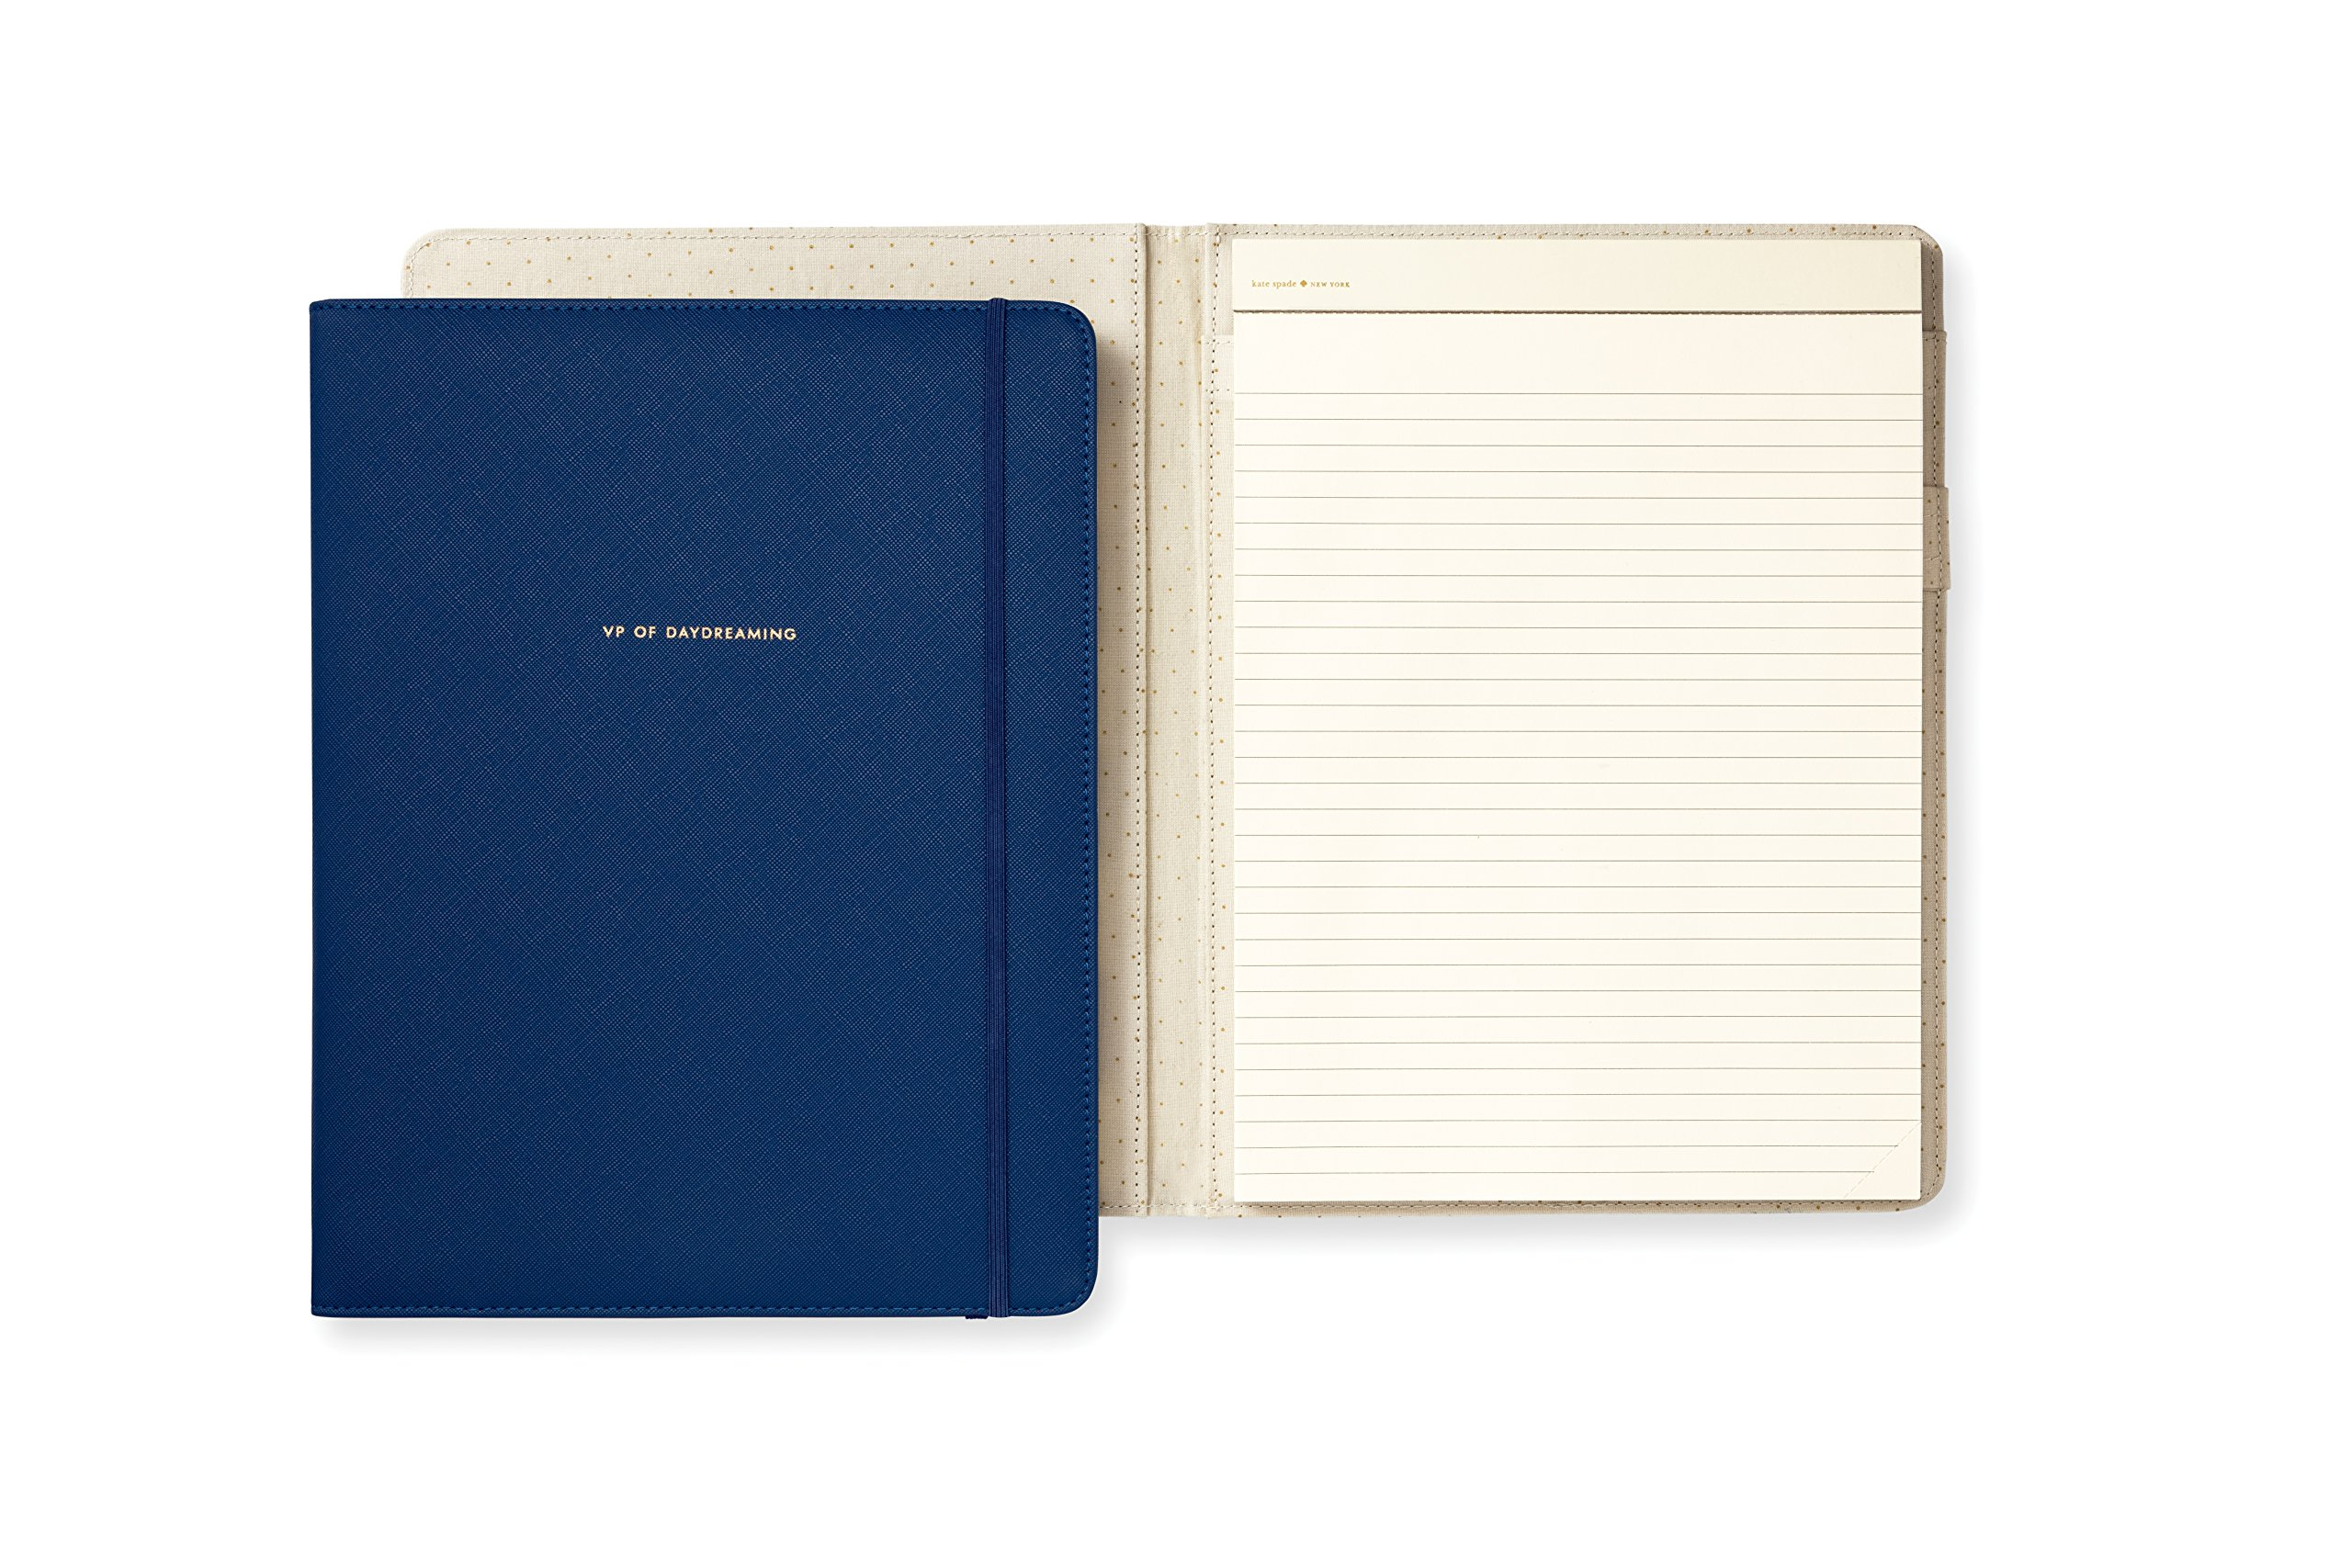 Kate Spade New York VP of Daydreaming Notepad Folio, Blue